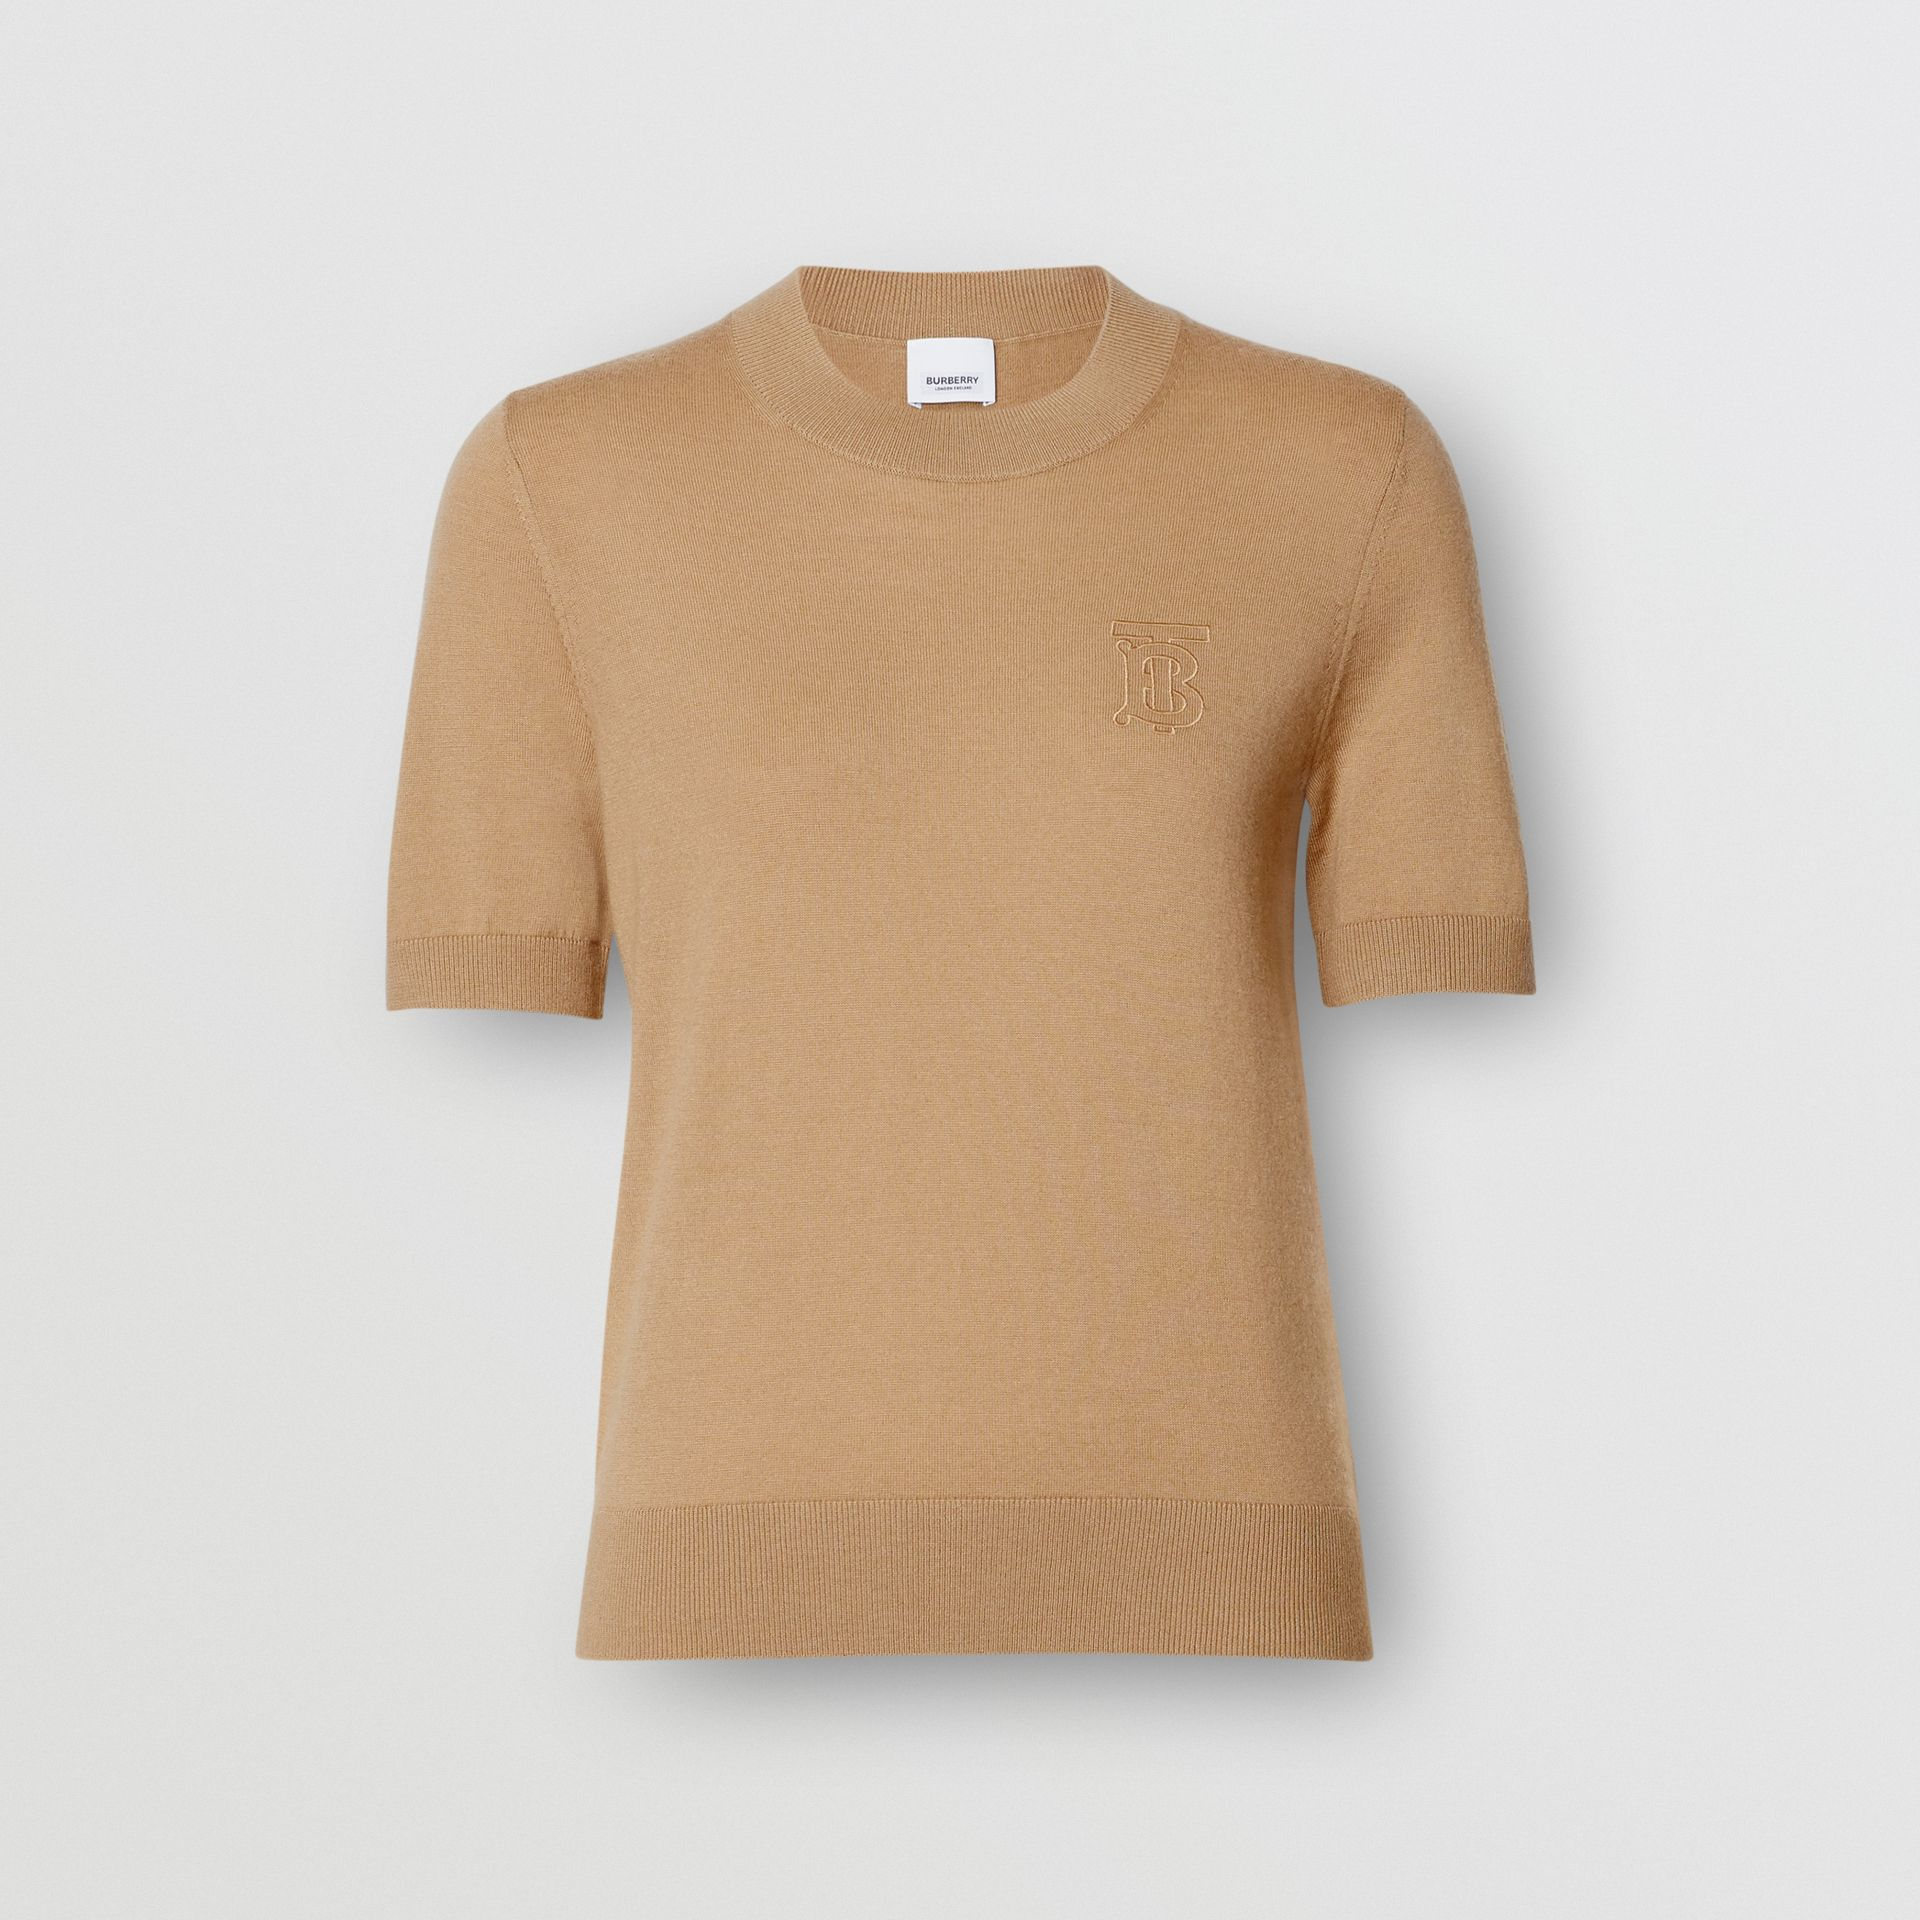 Monogram Motif Cashmere Top in Archive Beige - Women | Burberry United Kingdom - gallery image 3